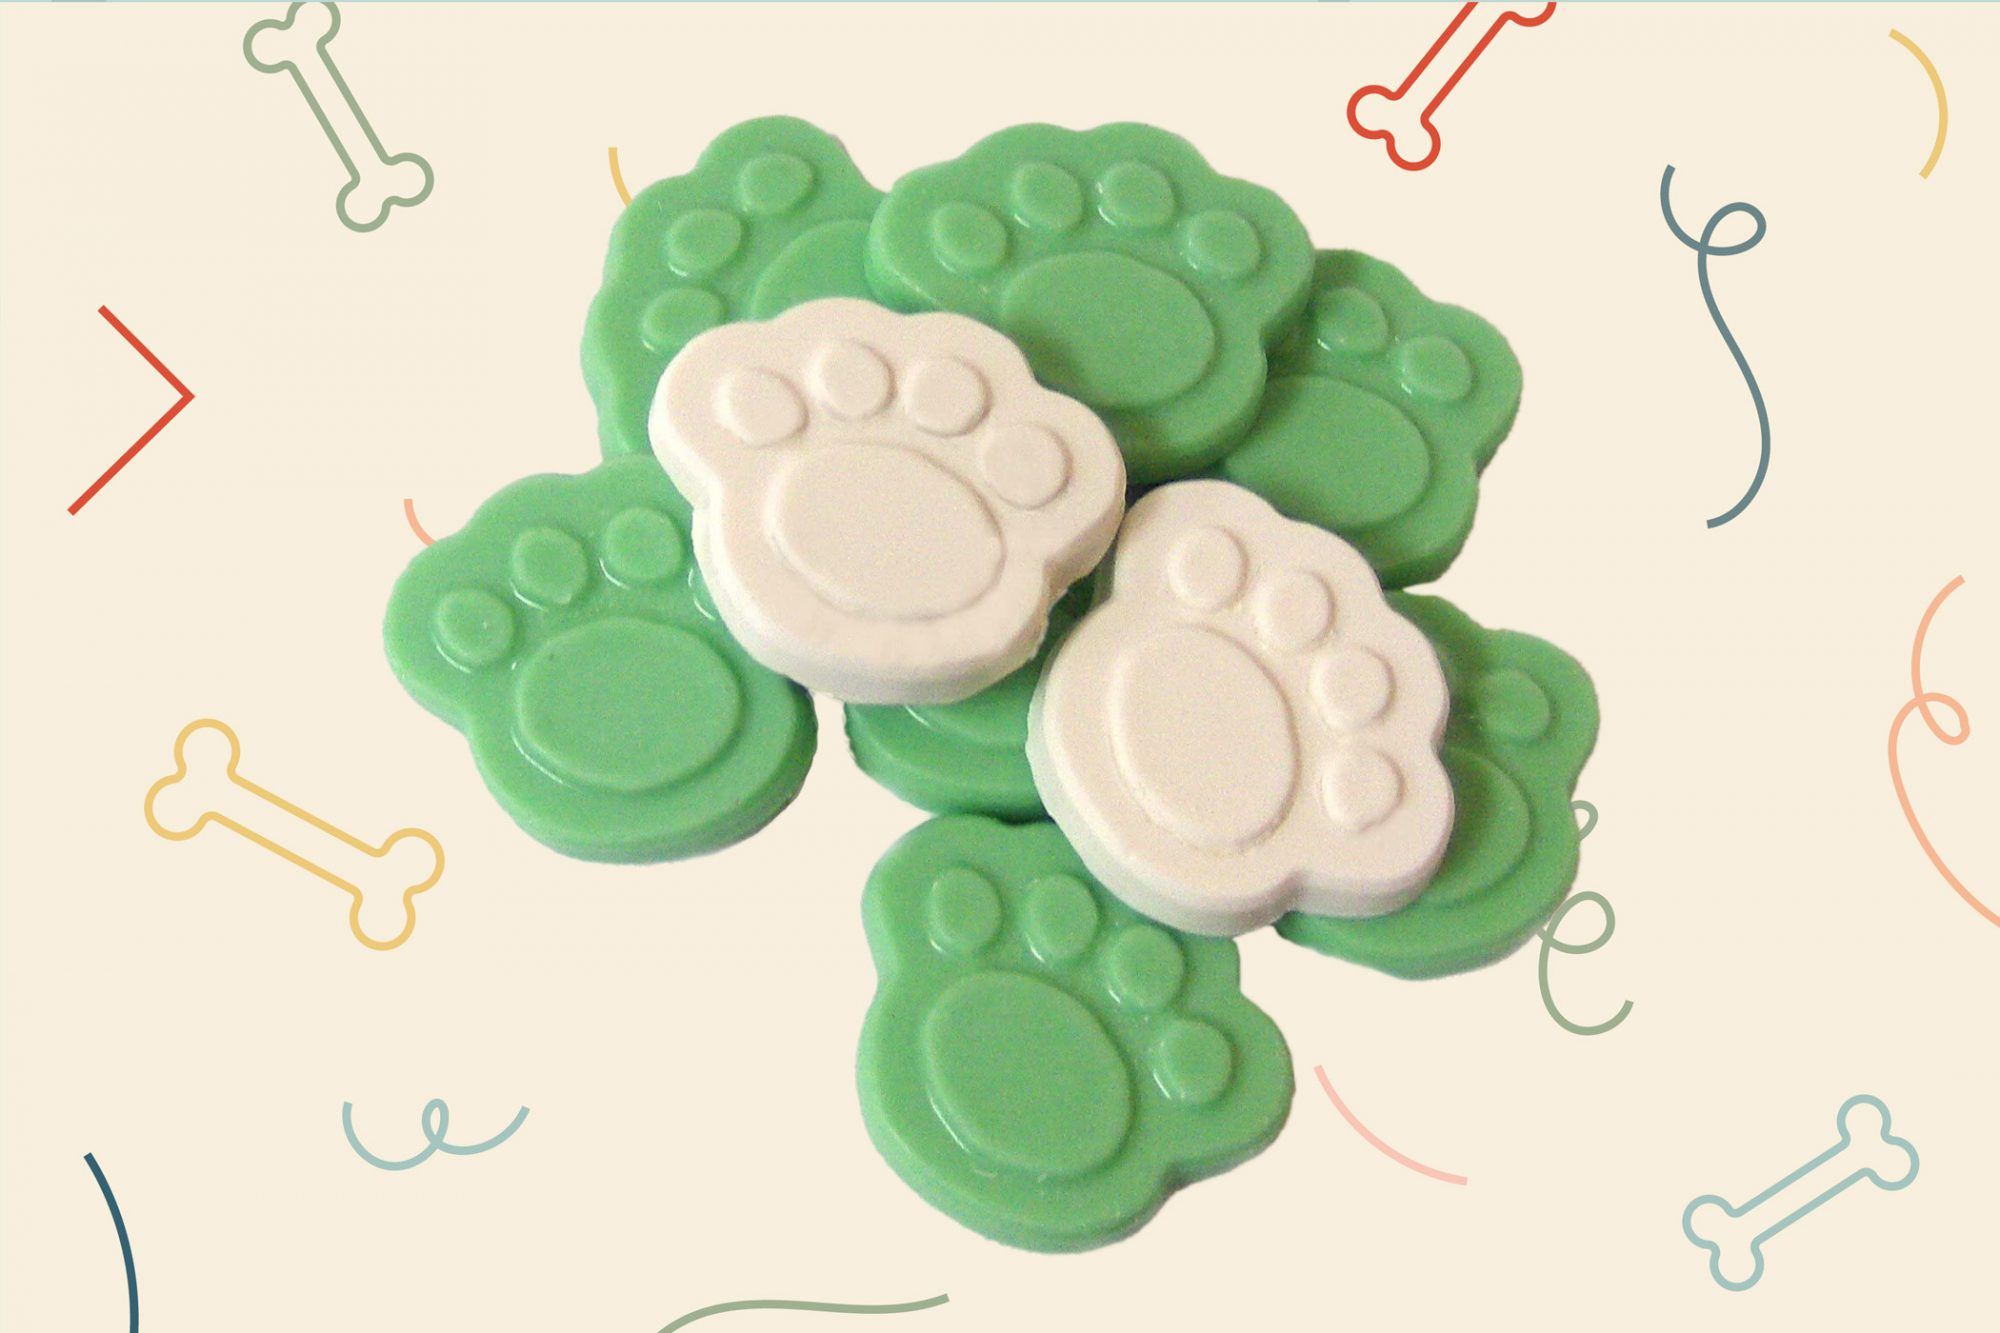 dog breath mints